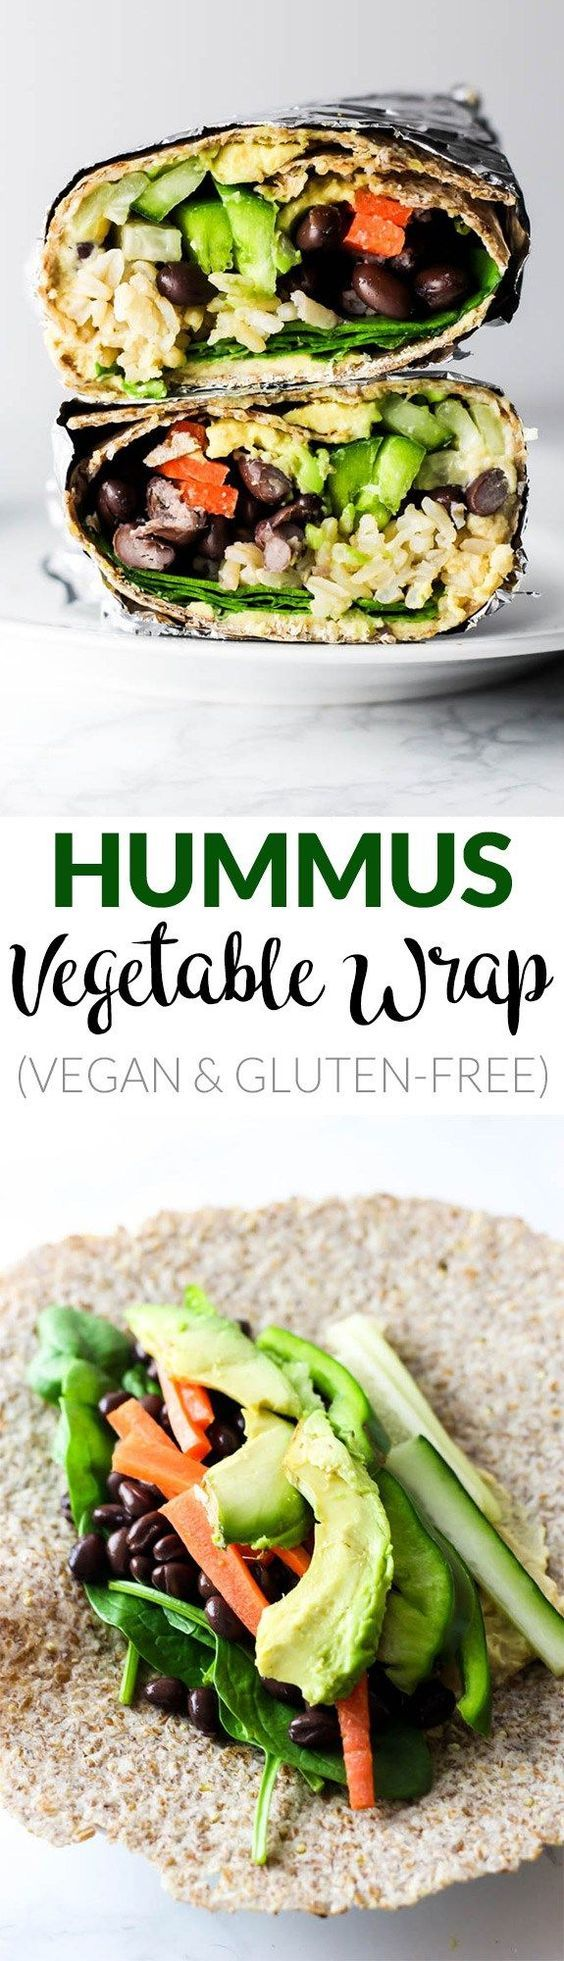 This Hummus Vegetable Wrap is a great on-the-go lunch option! Stuff it with all of your favorite vegetables beans